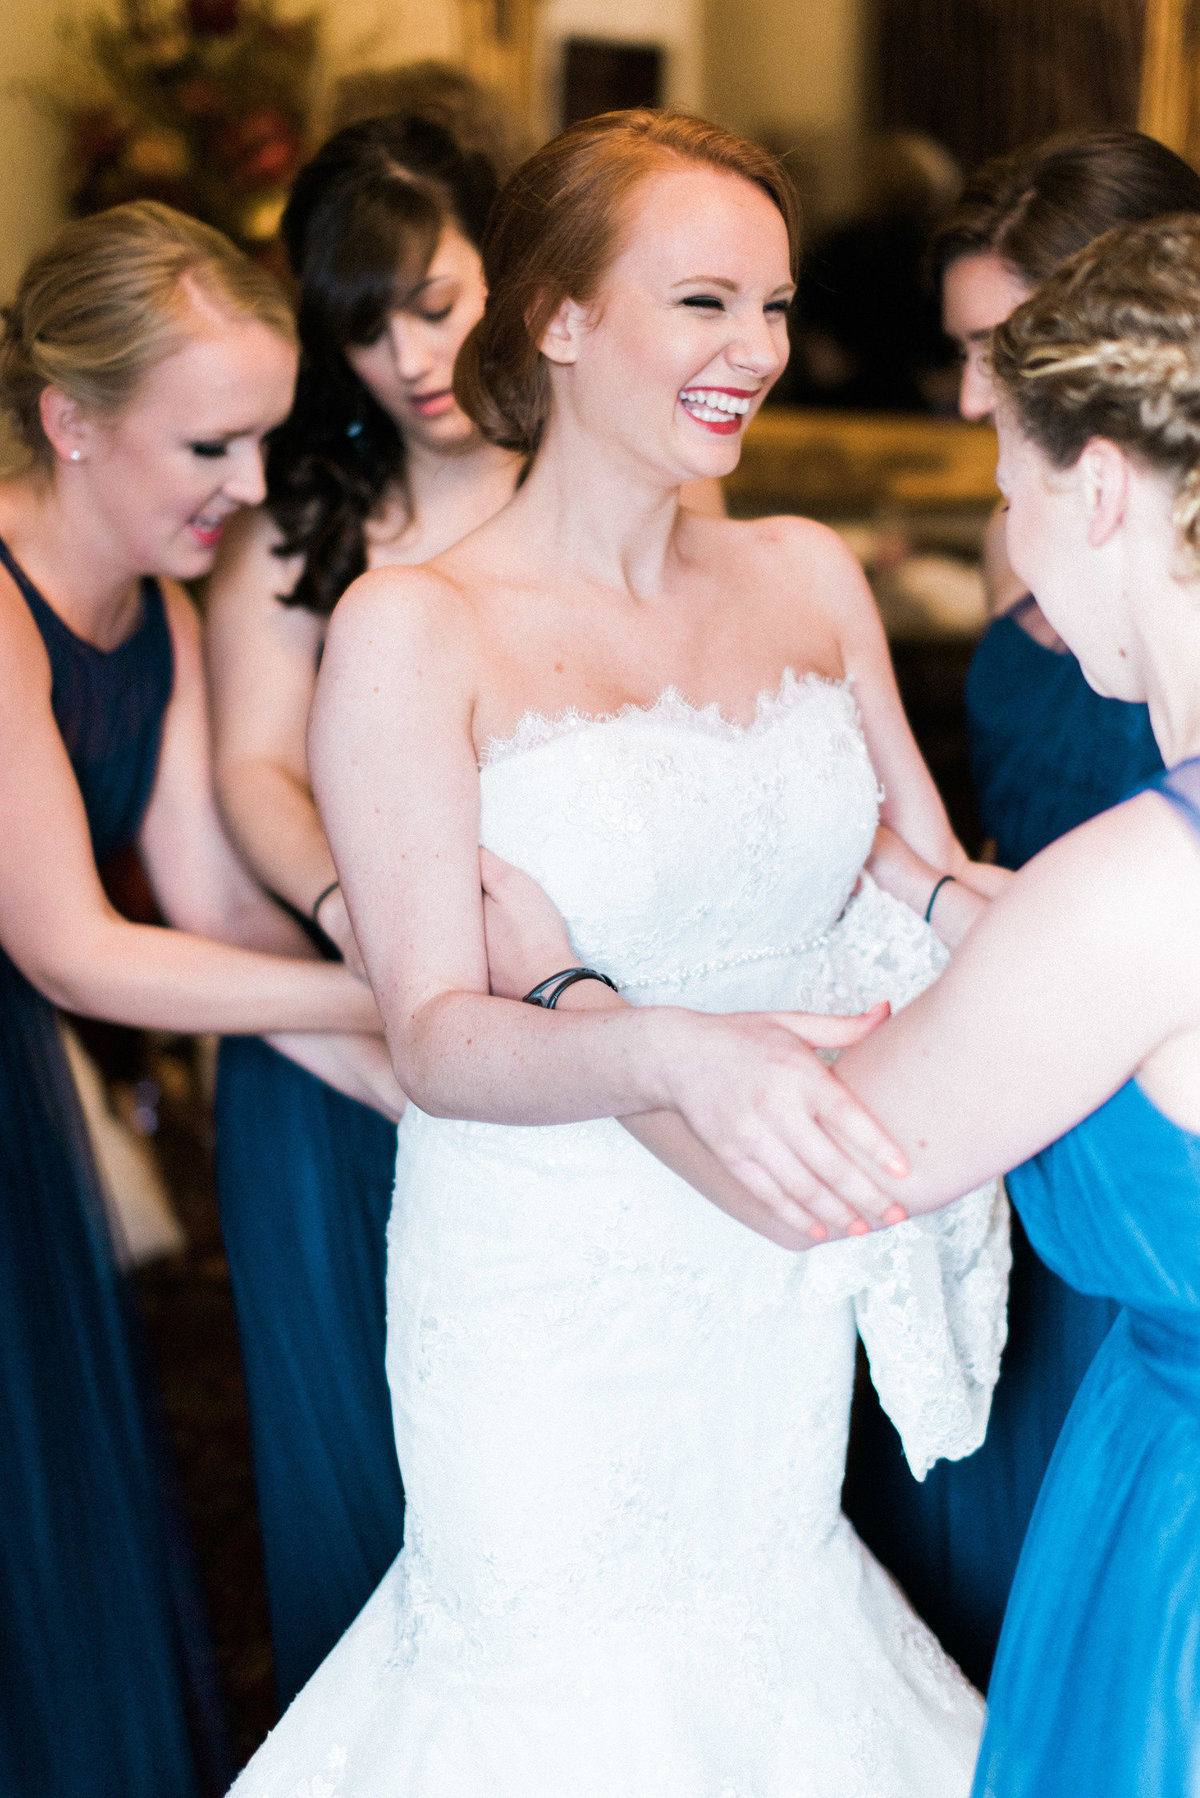 dana+fernandez+photography+houston+film+wedding+photographer+destination+heather's+glen+texas-12